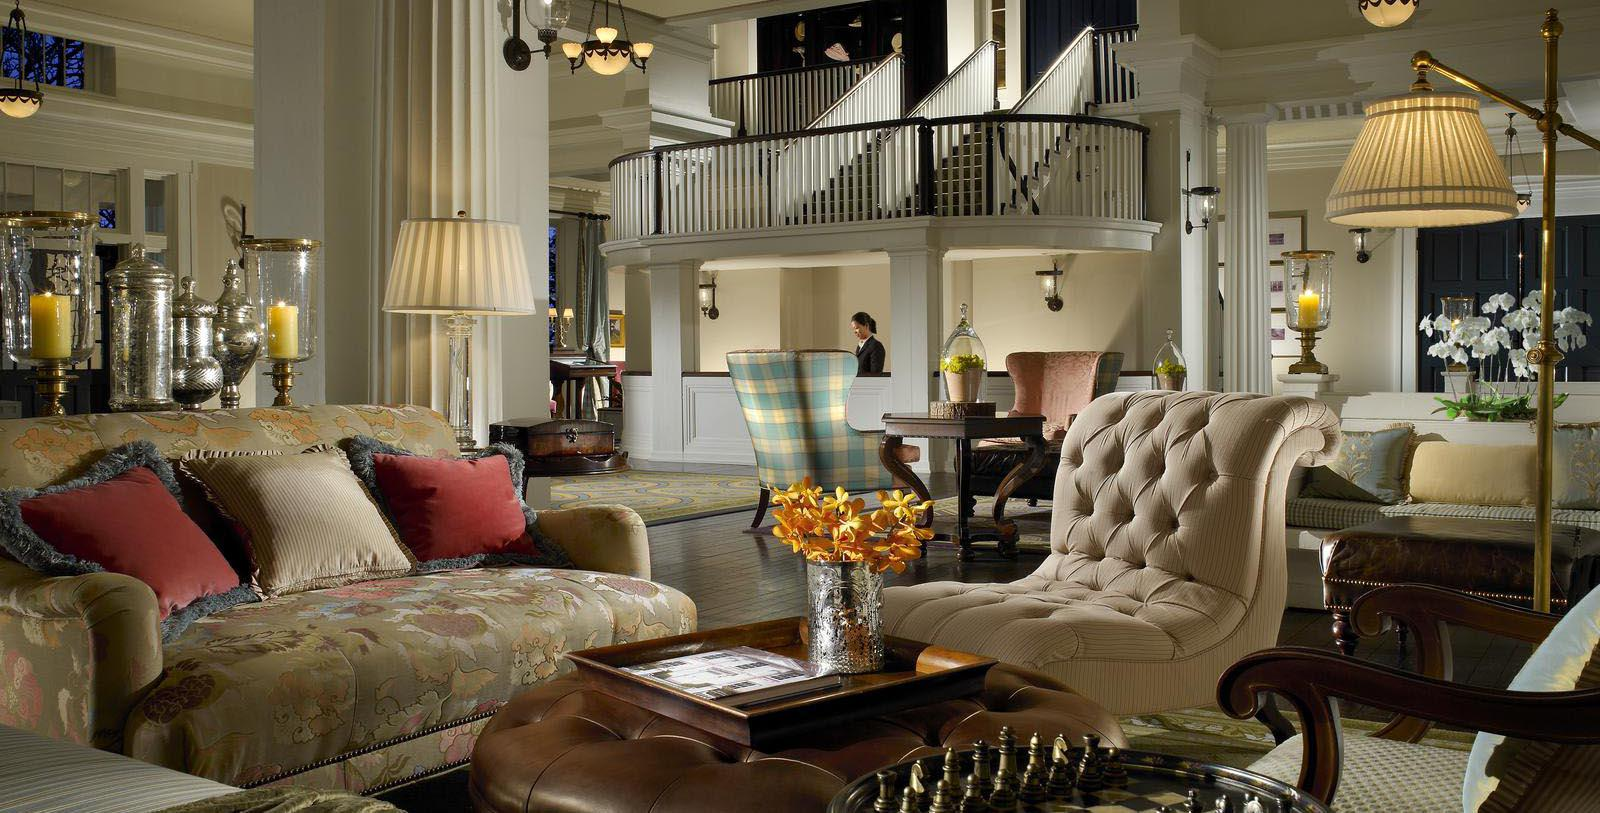 Image of Lobby Seating & Staircase, Omni Bedford Springs Resort & Spa, Bedford, Pennsylvania, 1806, Member of Historic Hotels of America, Special Offers, Discounted Rates, Families, Romantic Escape, Honeymoons, Anniversaries, Reunions